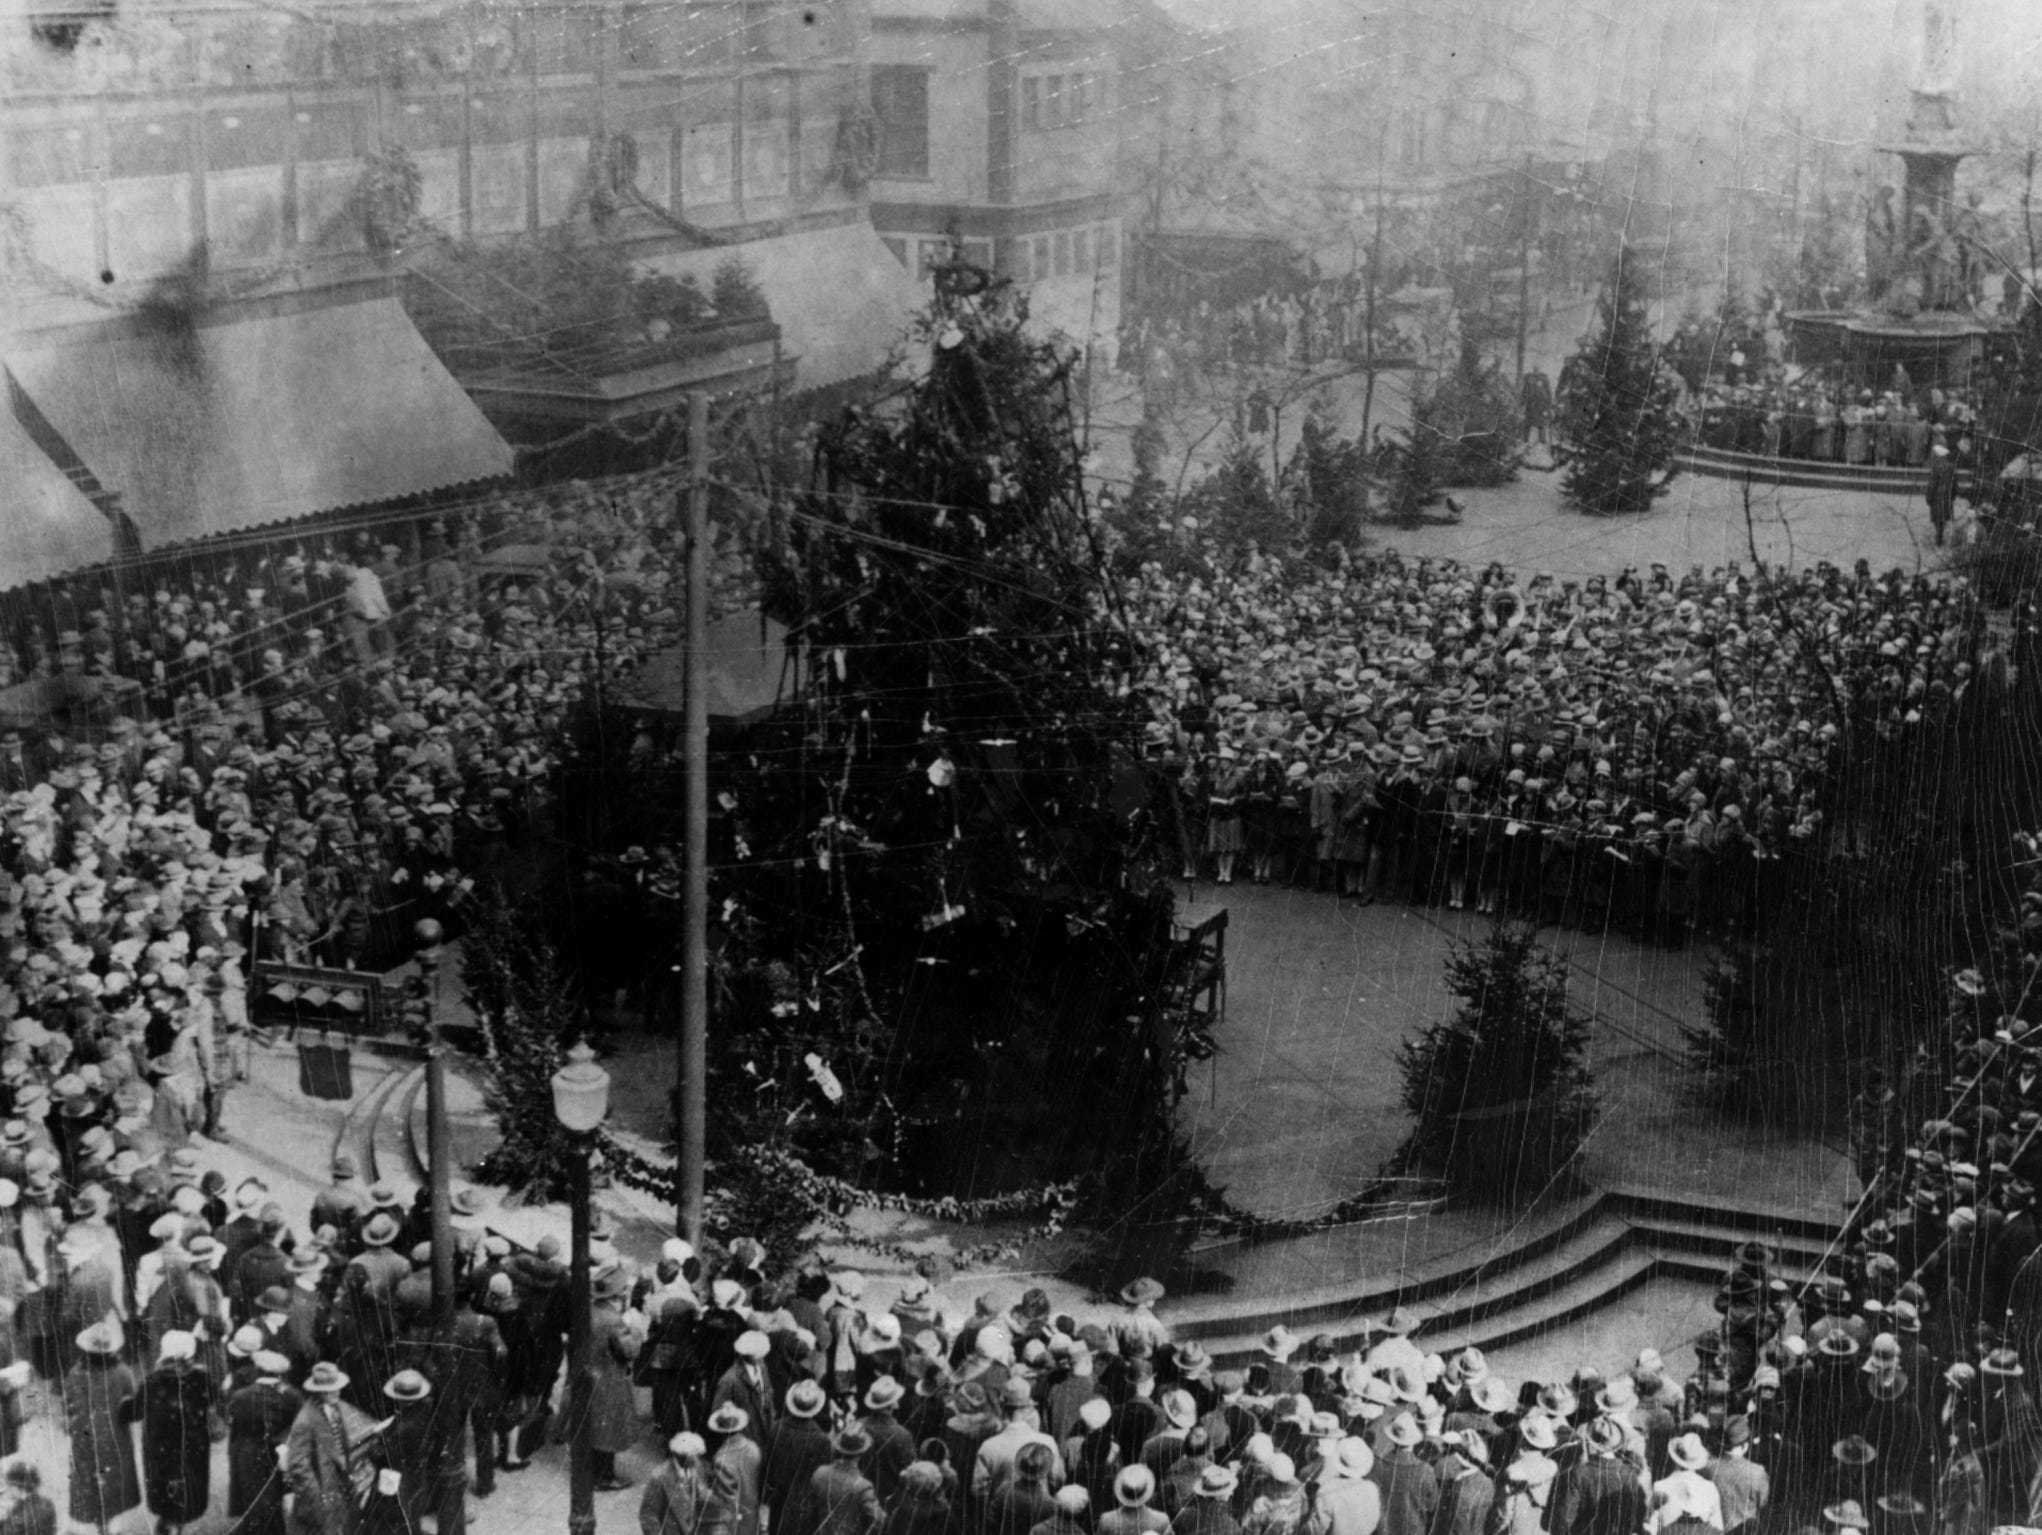 1928: Annual lighting of the Christmas tree on Fountain Square. Hundreds of Cincinnatians gather to officially open the holiday season.